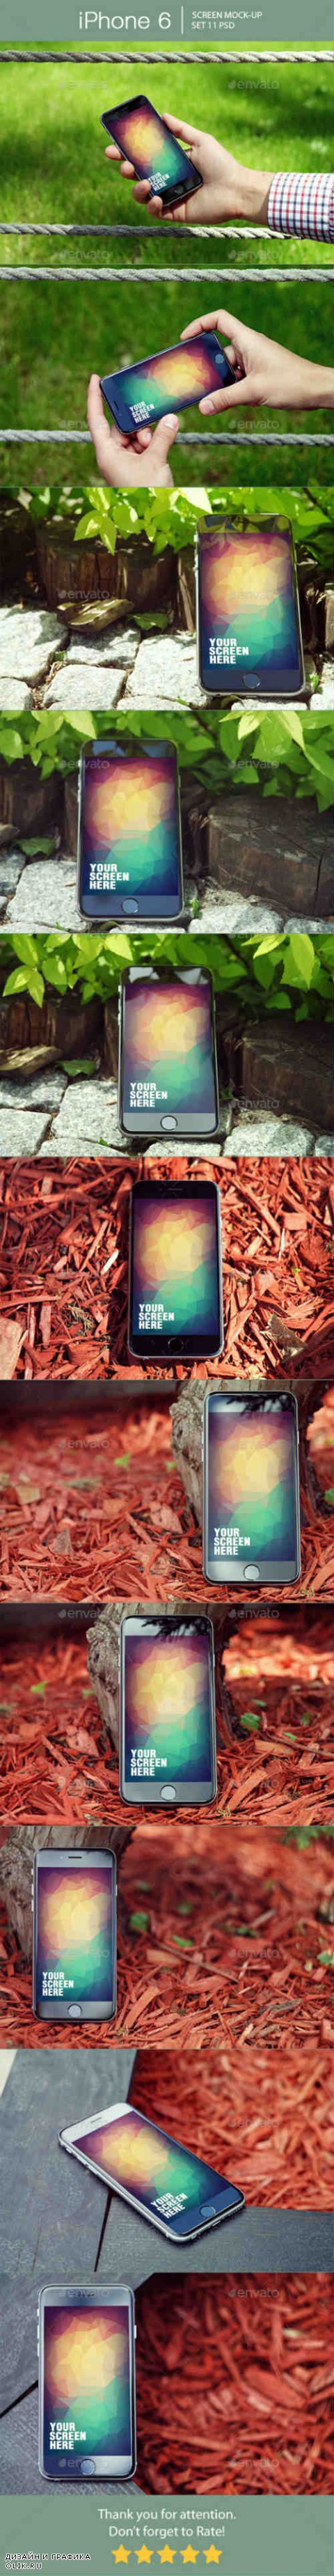 iPhone 6 Screen Mockup 14771727